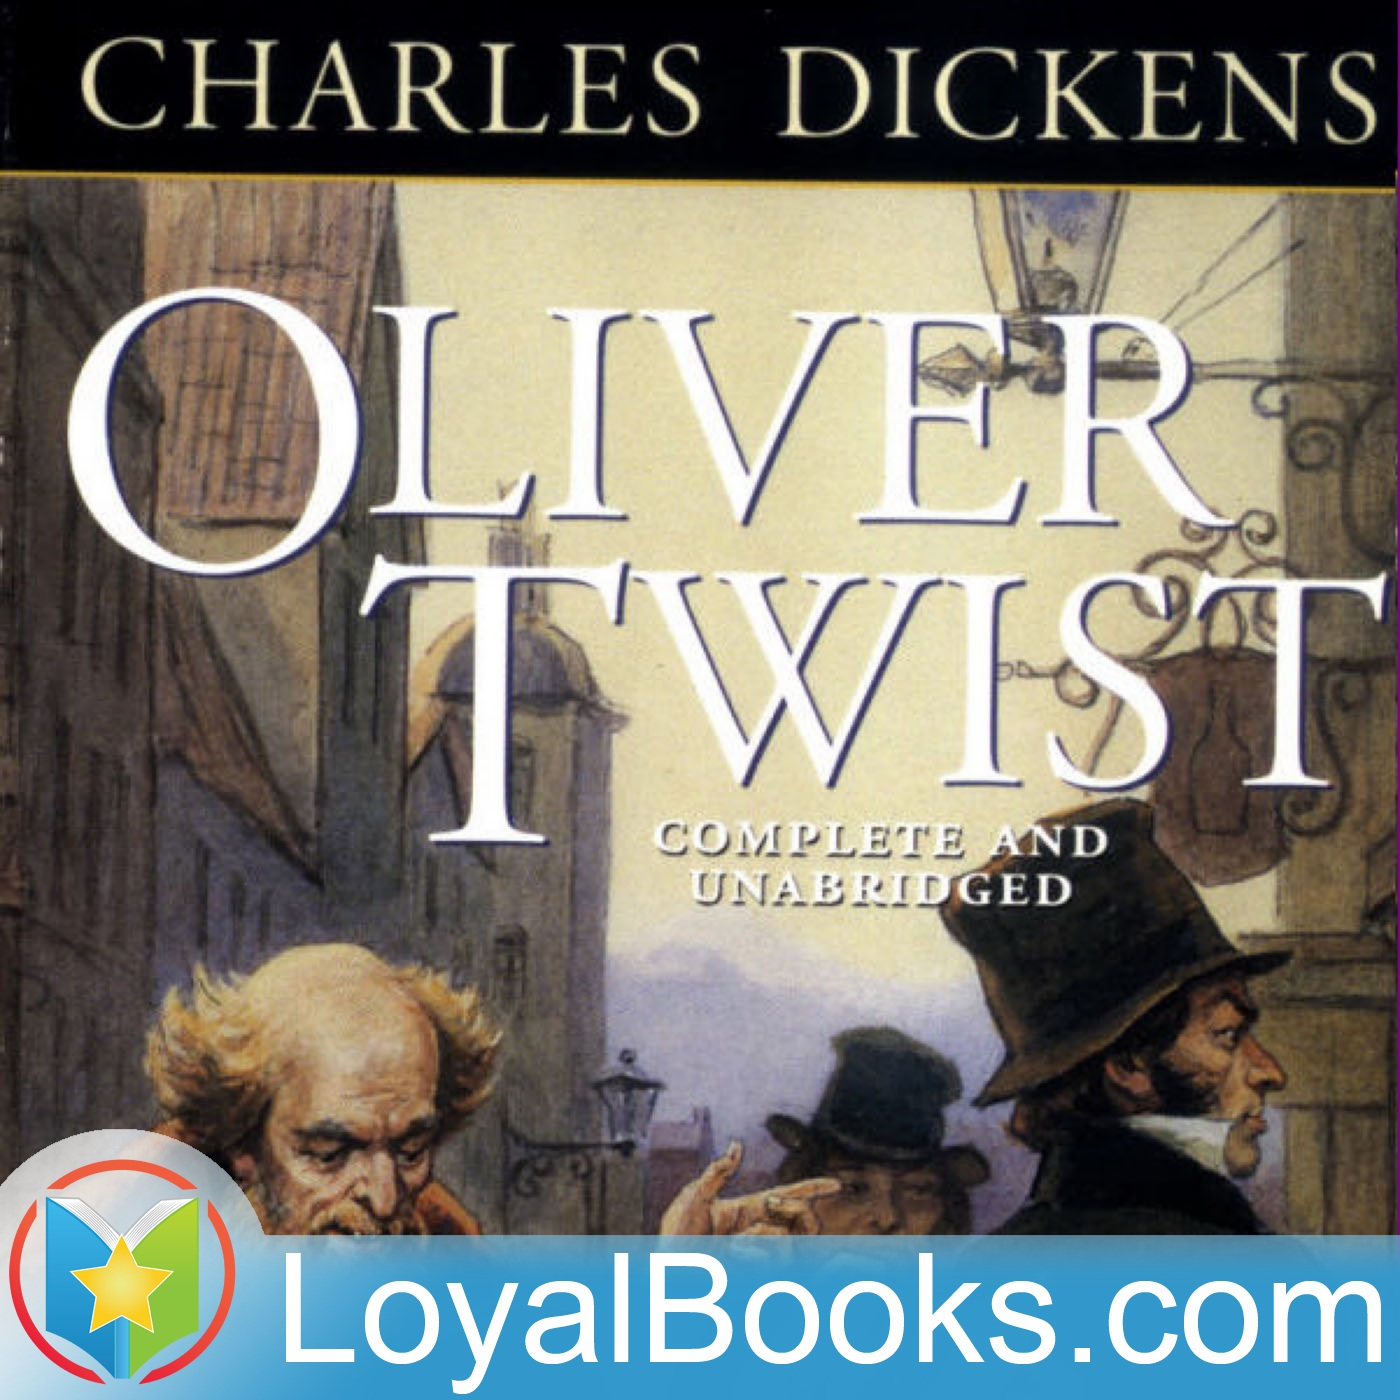 <![CDATA[Oliver Twist by Charles Dickens]]>